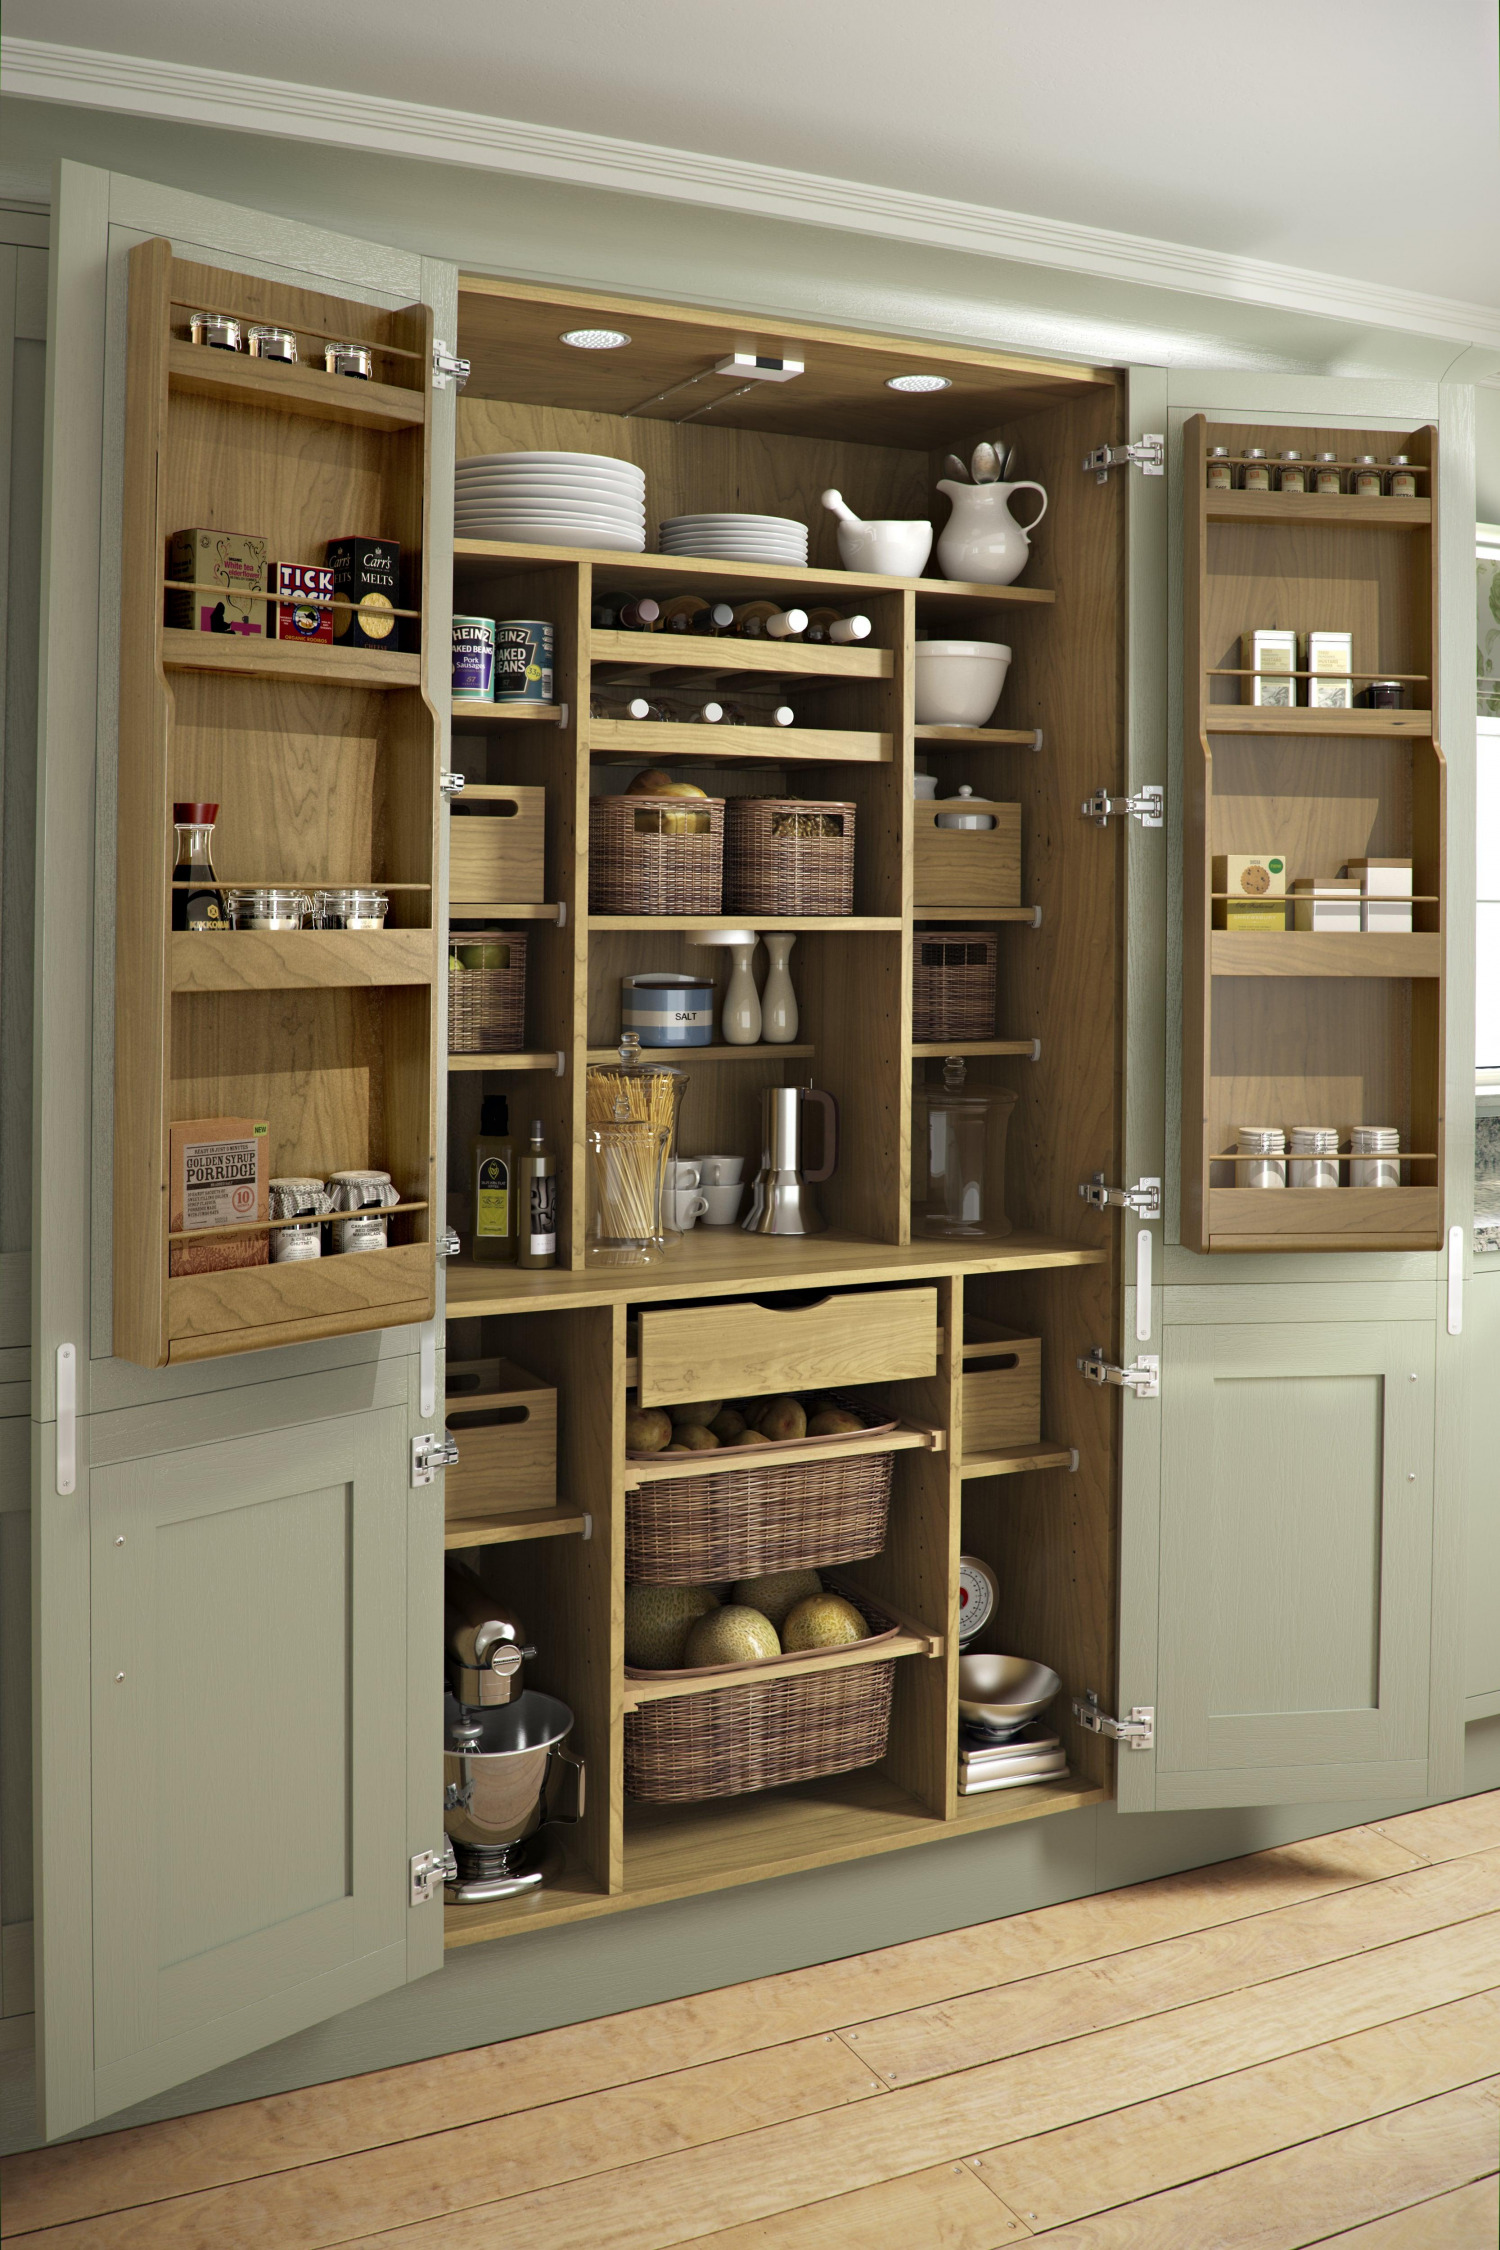 Kitchen Shelving Butler Pantry Unit